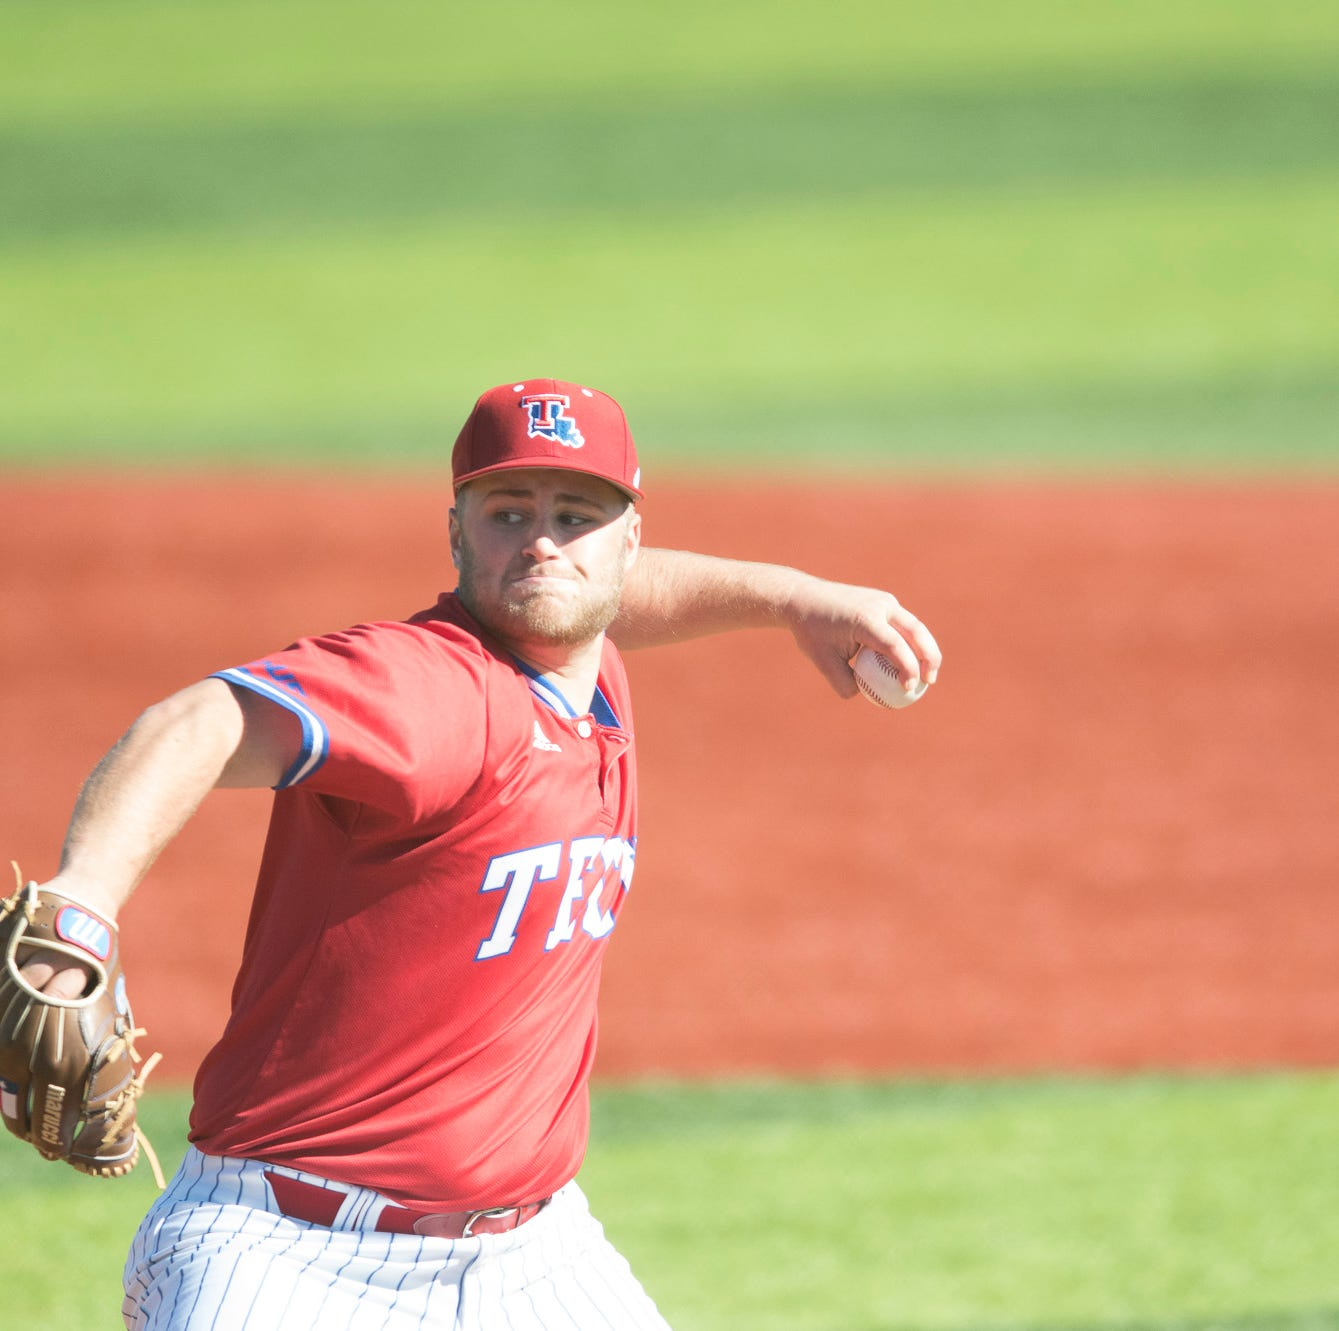 College athletics: LaTech baseball drops regular-season finale in Miami